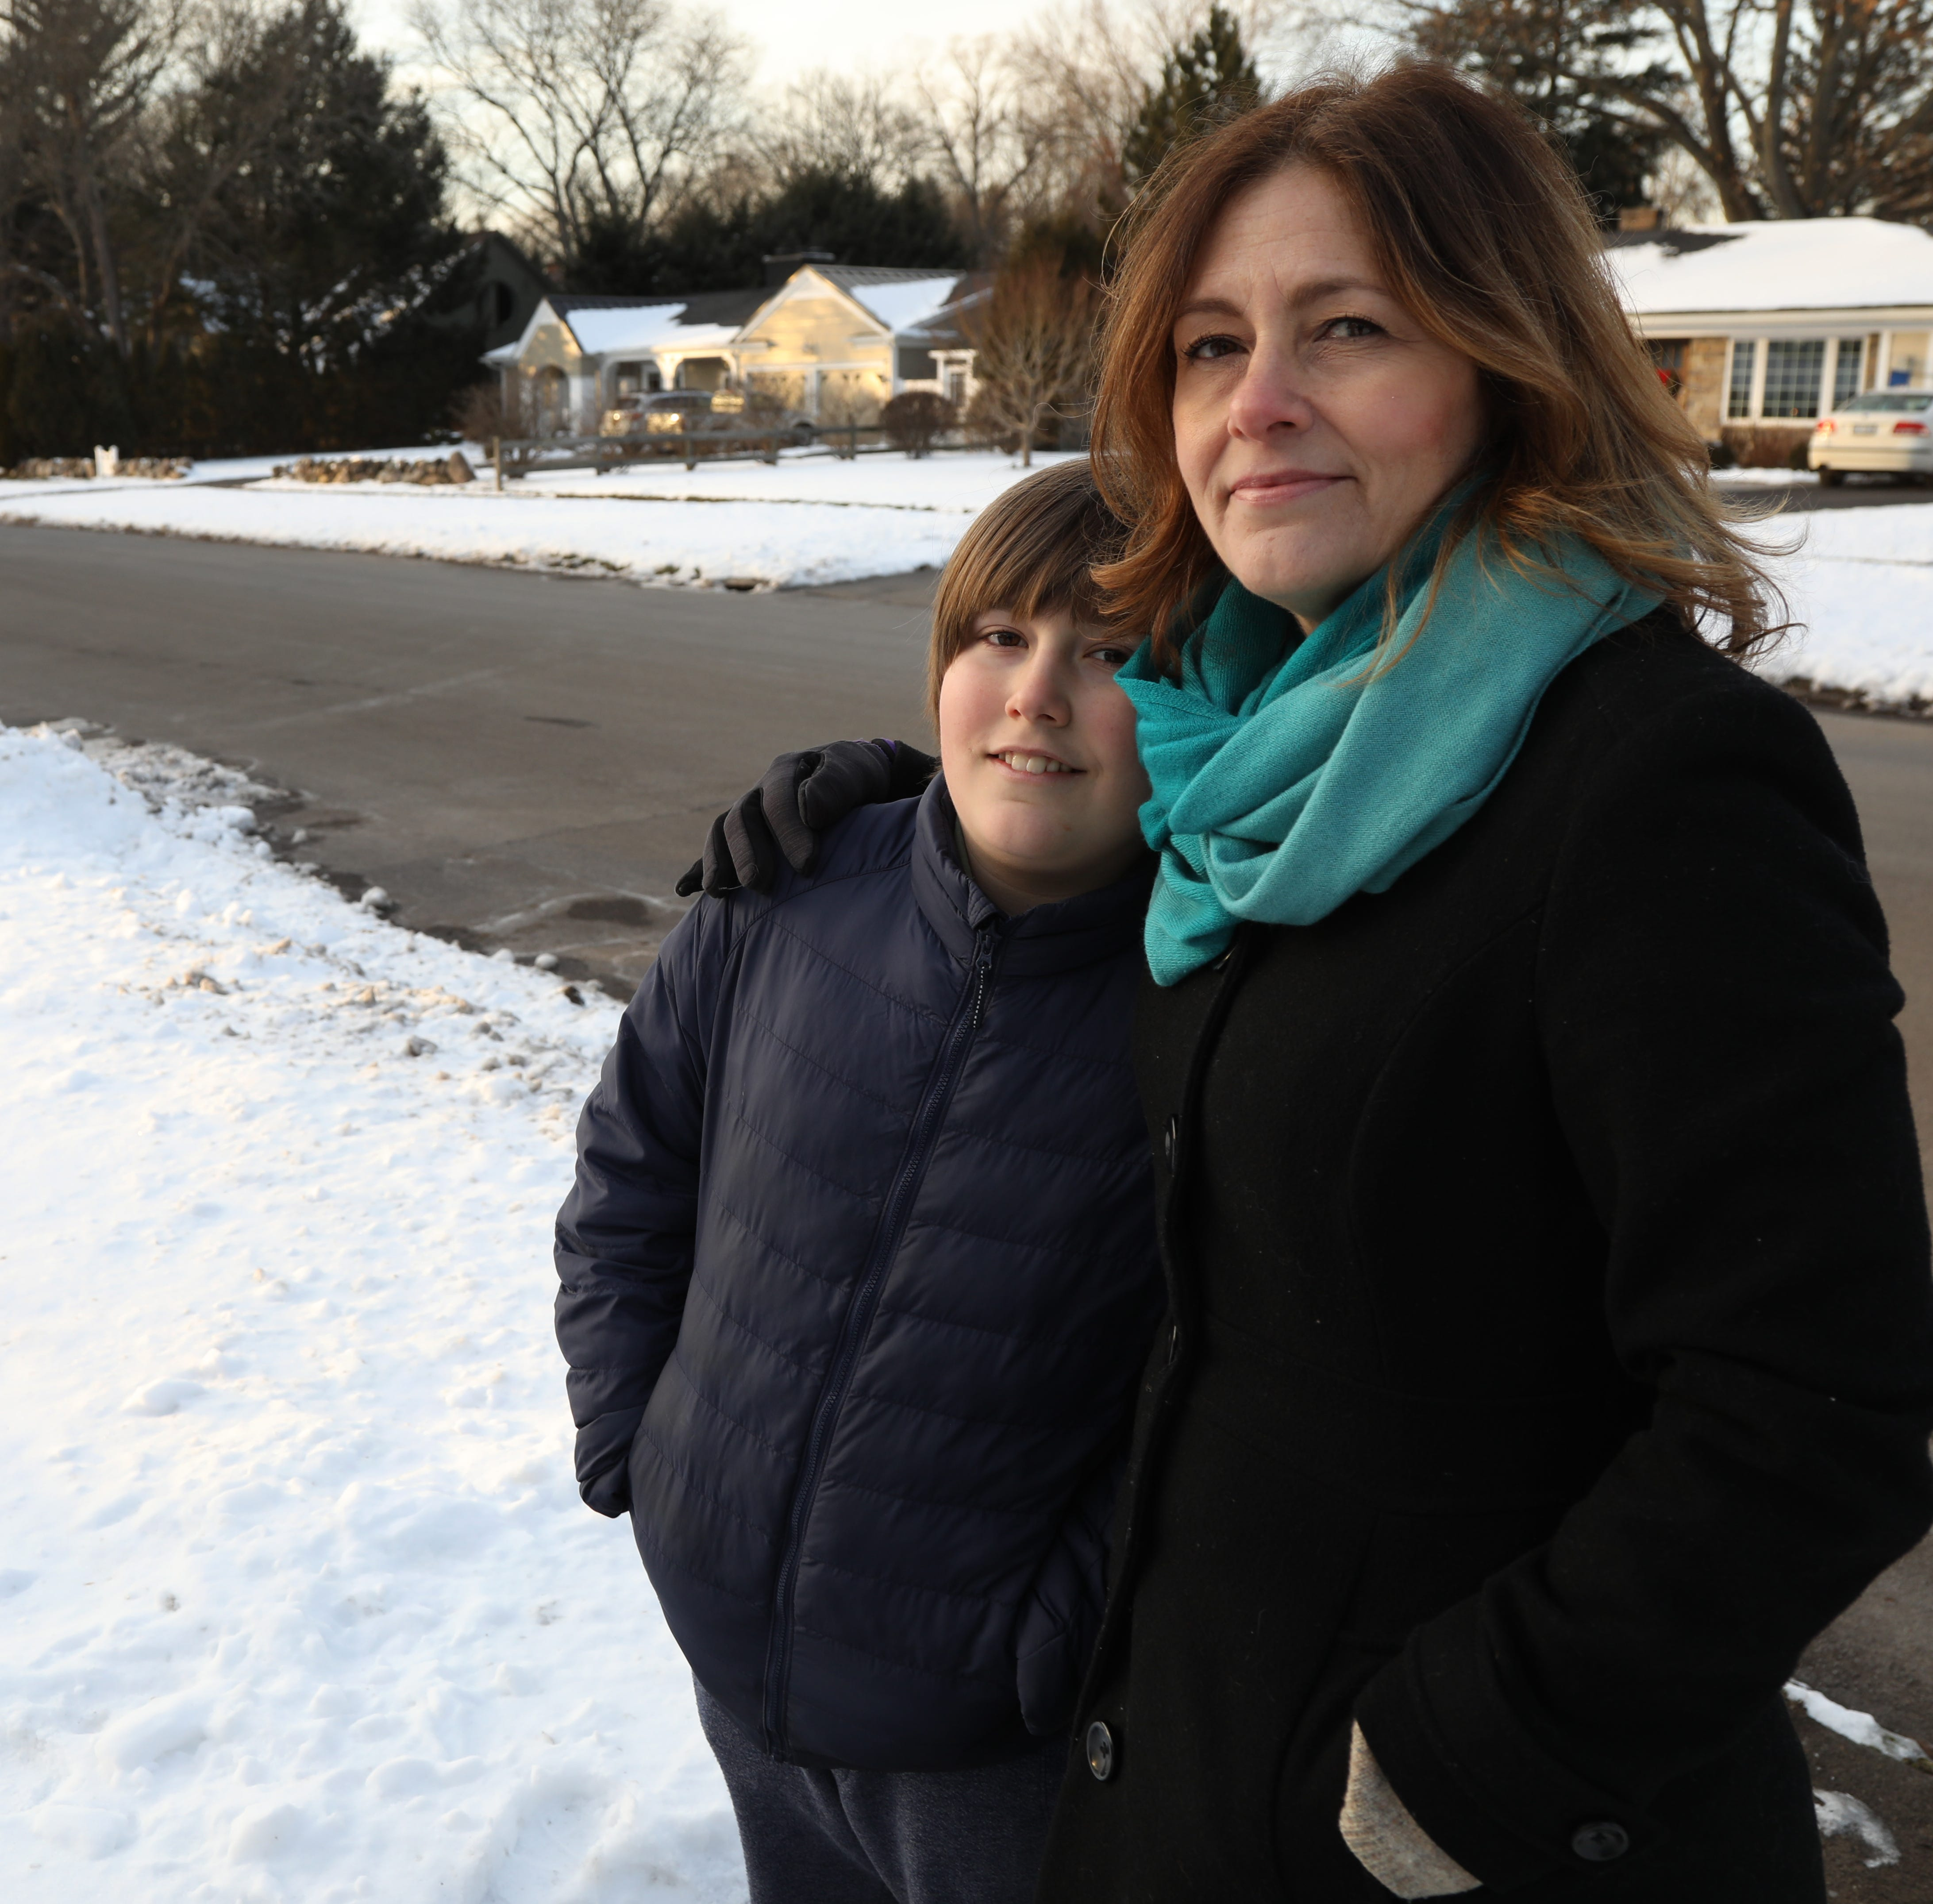 Andreatta: Driver's non-apology for car accident hits Pittsford boy hard